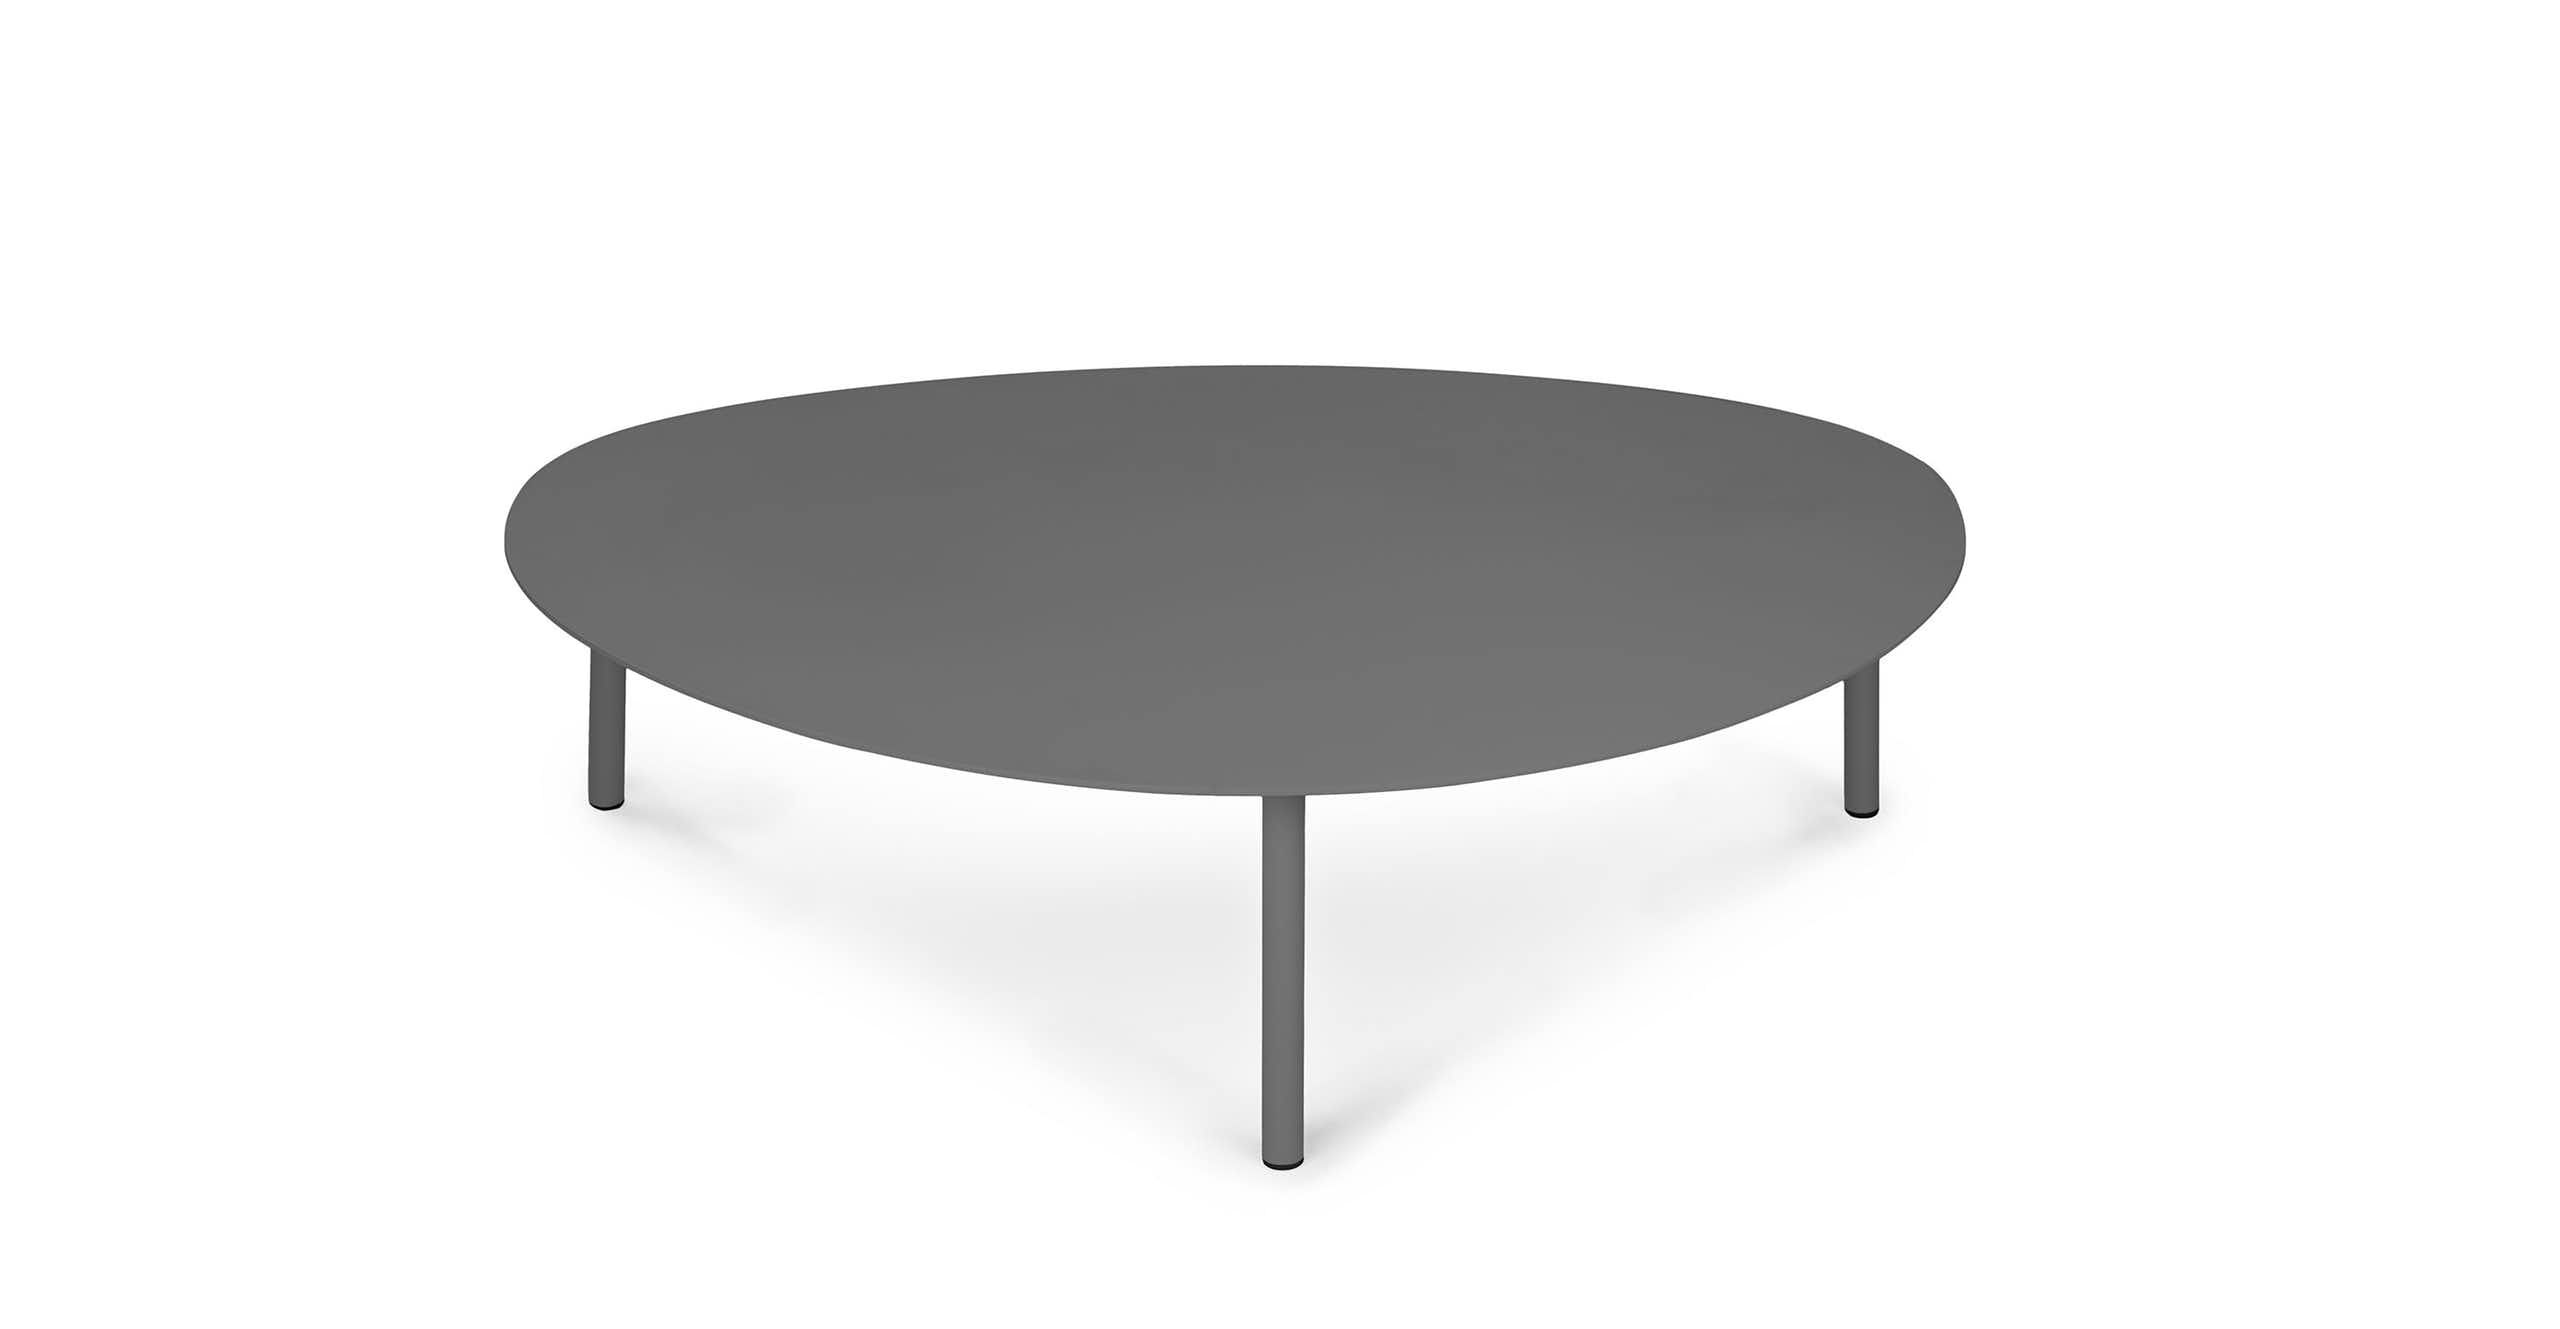 The Nebu Coffee Table Is Lightweight But Makes A Big Statement Low Profile Fresh And Moder Coffee Table Modern Coffee Tables Mid Century Modern Coffee Table [ 1329 x 2560 Pixel ]